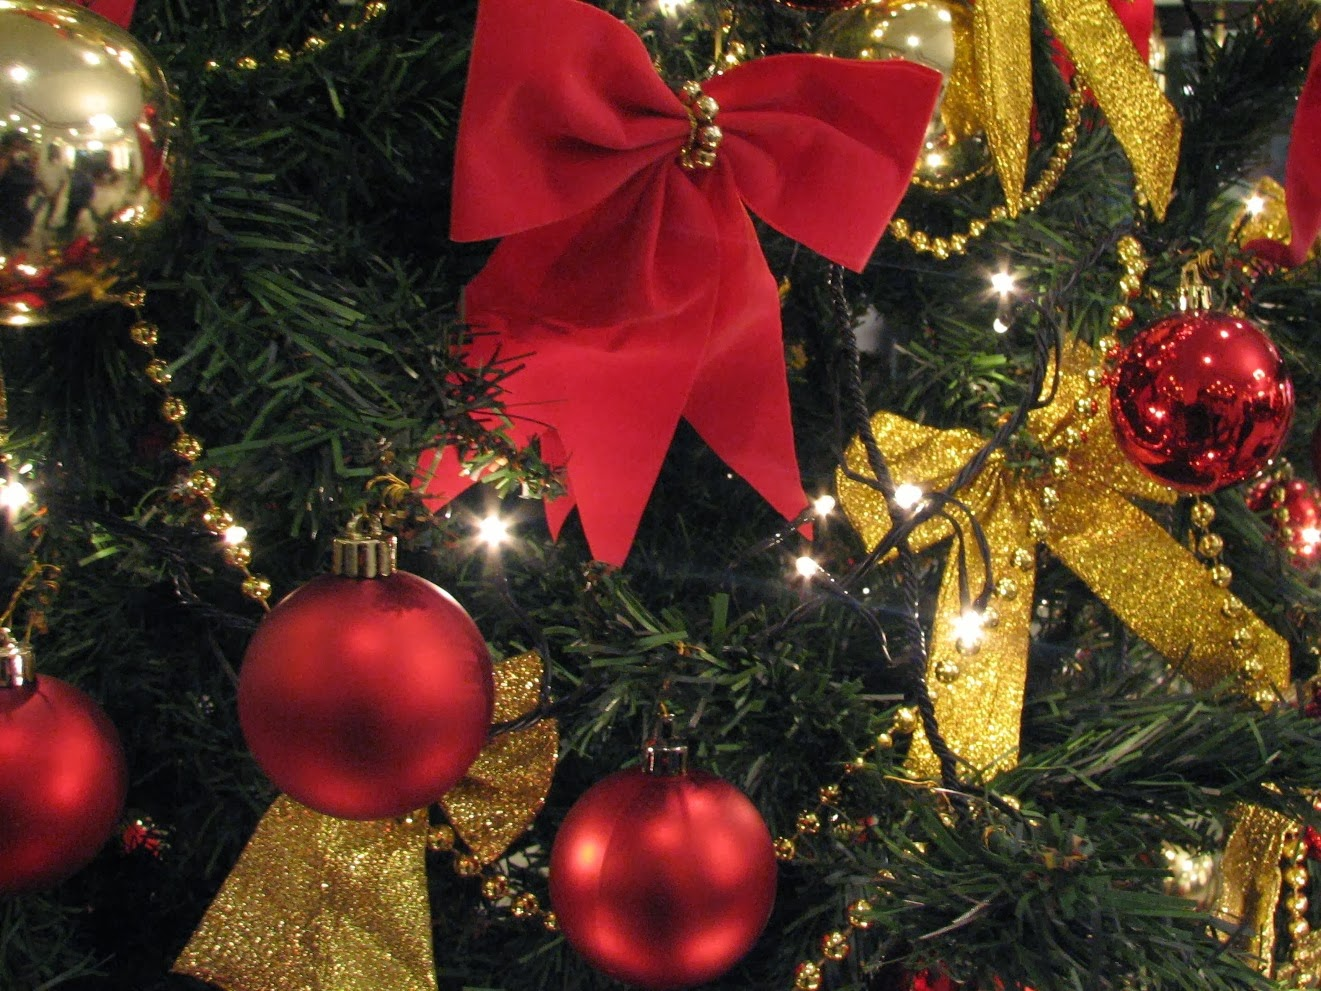 Red and gold christmas tree decorating ideas - Christmas Decorating Ideas In Green Red And Gold